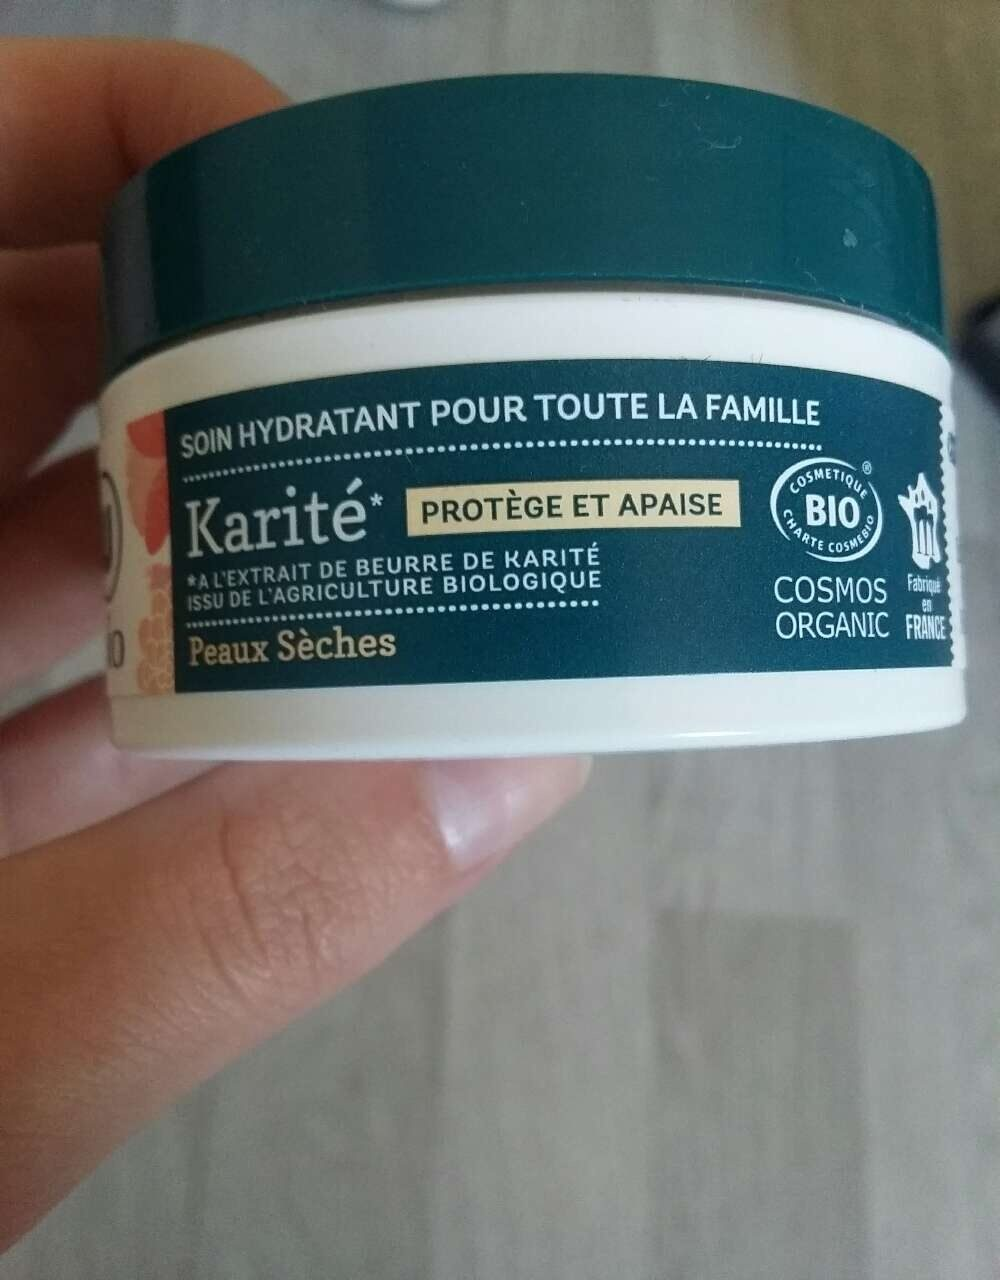 Soin hydratant karité - Ingredients